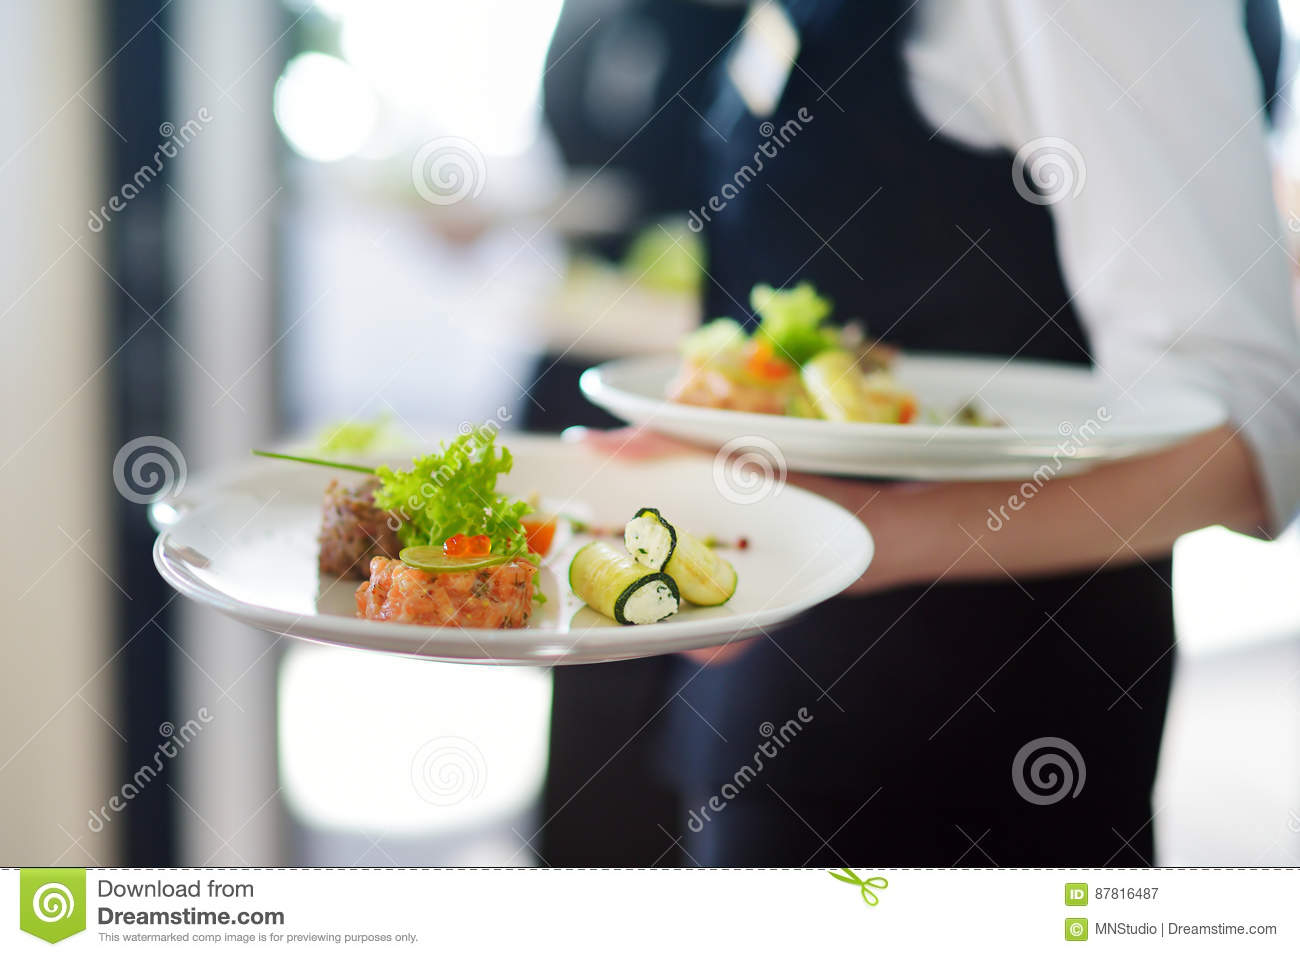 how to become a waiter Waiter/ waitress careers  learn about becoming a waiter/ waitress and what does it take to become a waiter/ waitress with career details and course listings from professional hotcourses uses cookies to ensure you get the best experience.